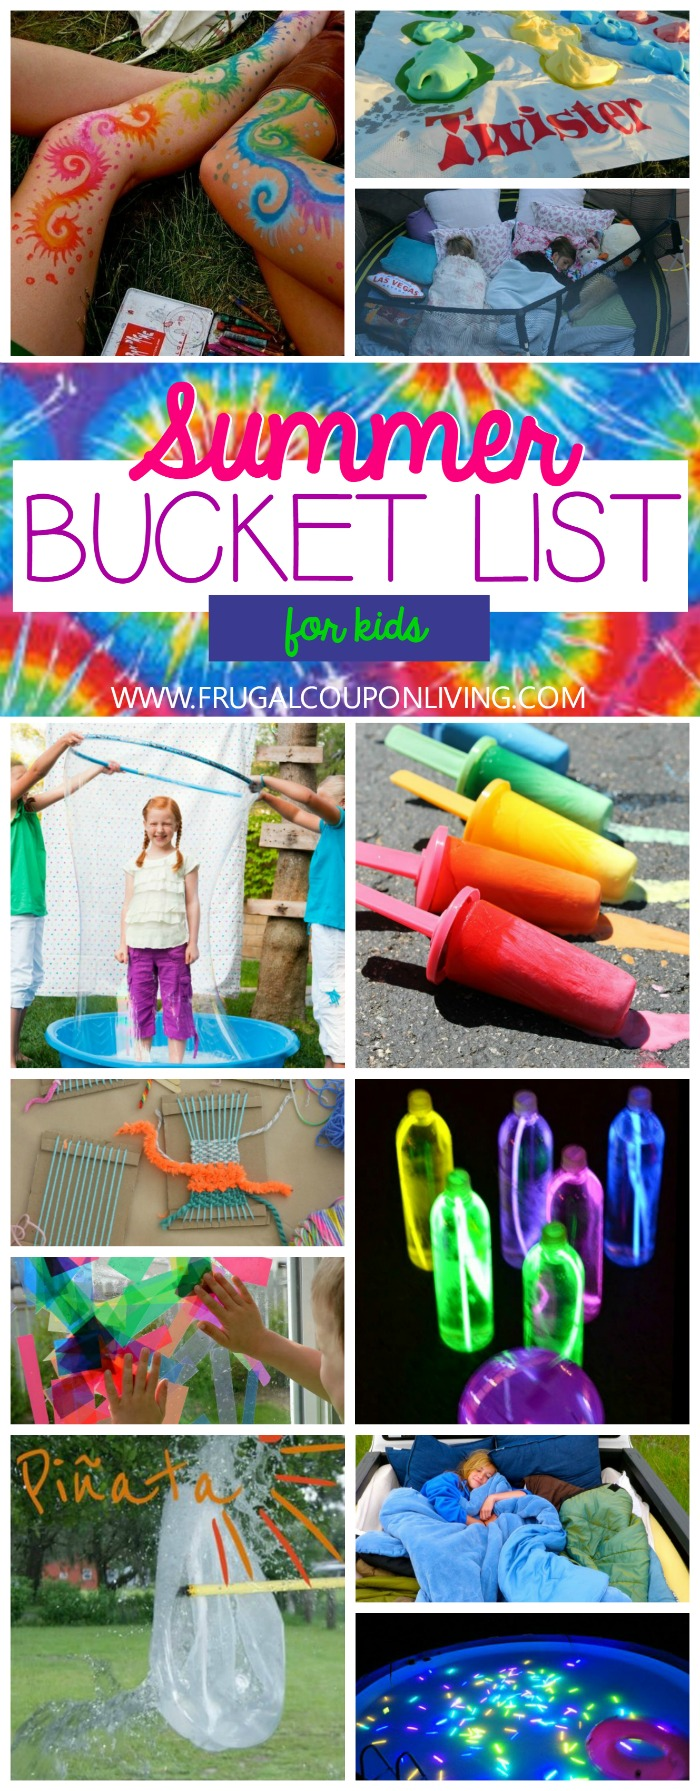 summer-bucket-list-collage-for-kids-frugal-coupon-living-700